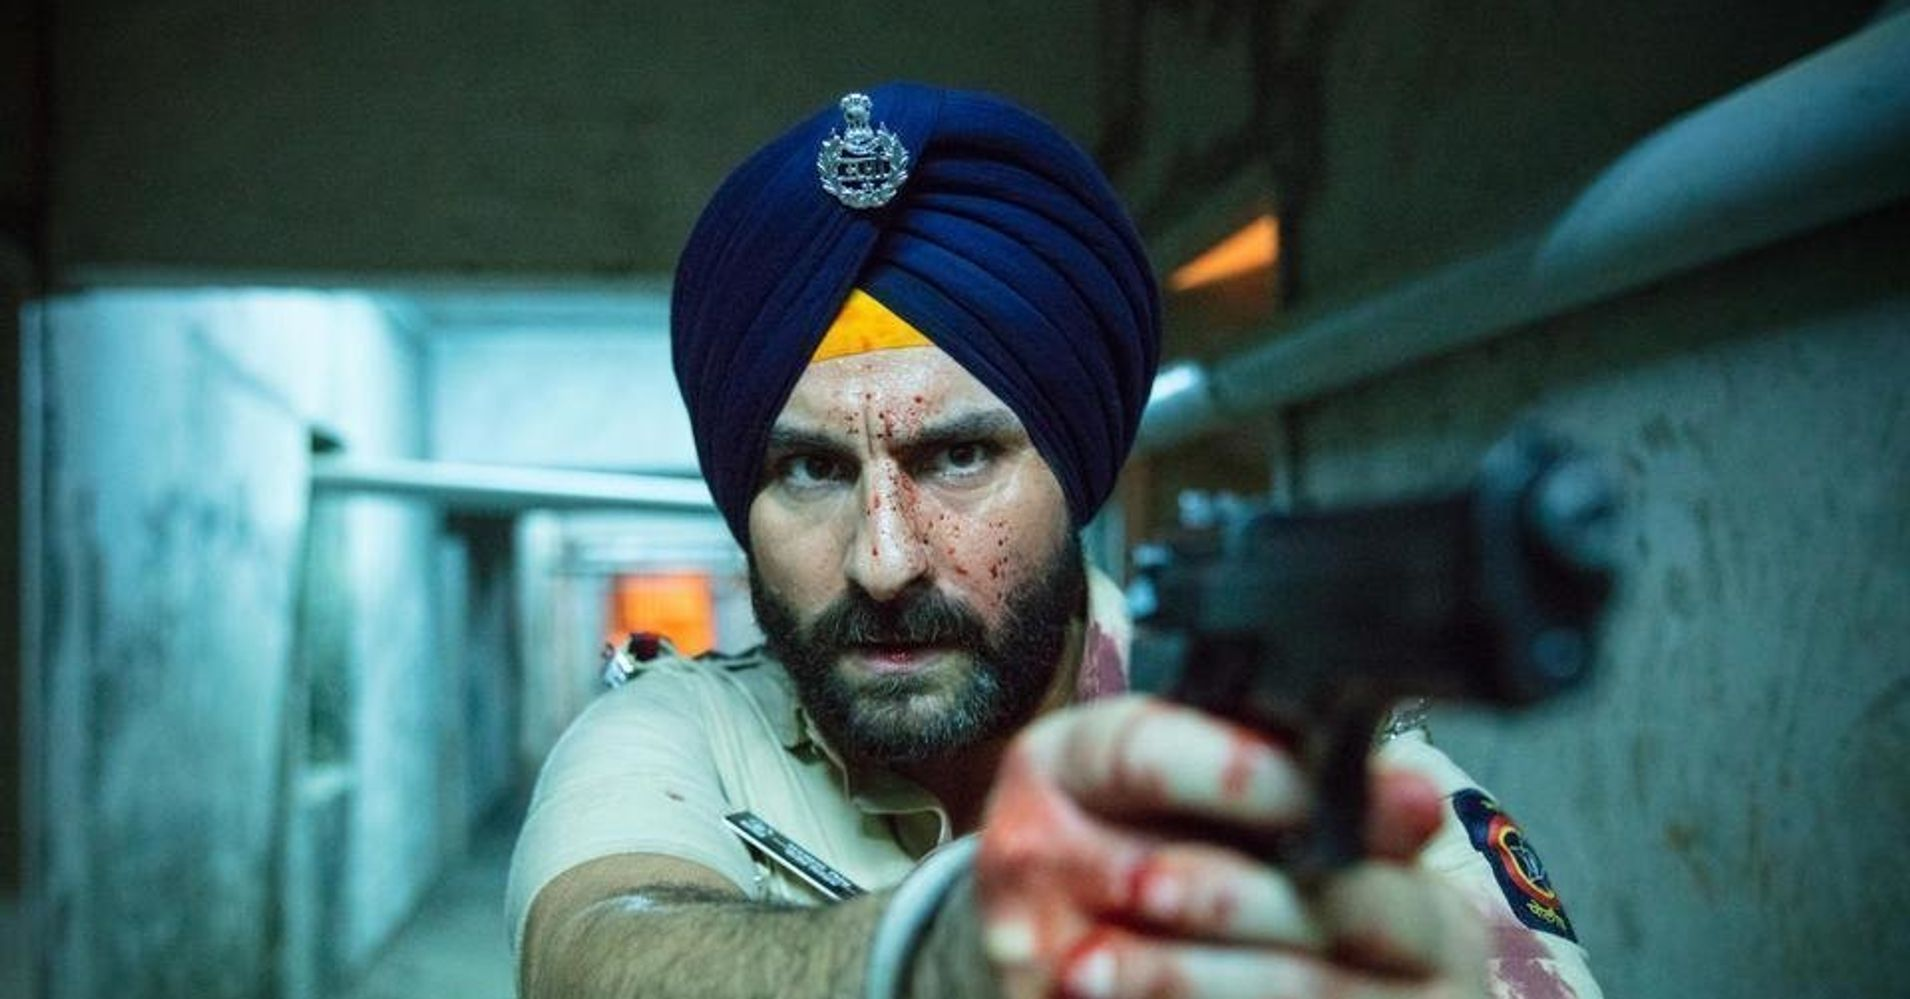 Netflix Debuts First Original Series From India, 'Sacred Games'